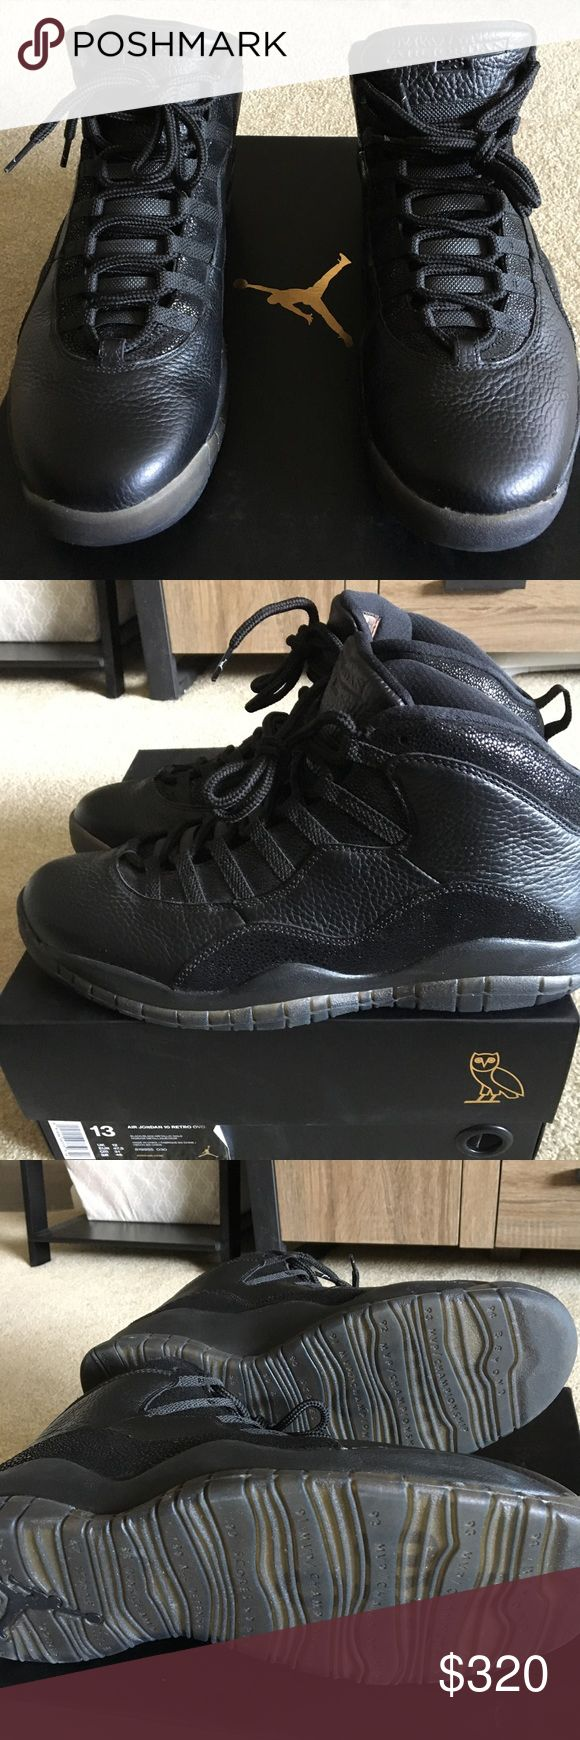 Jordan OVO 10 Black Jordan OVO 10 men's size 13. Worn once. Basically perfect condition! Original box and original receipt included! Air Jordan Shoes Sneakers